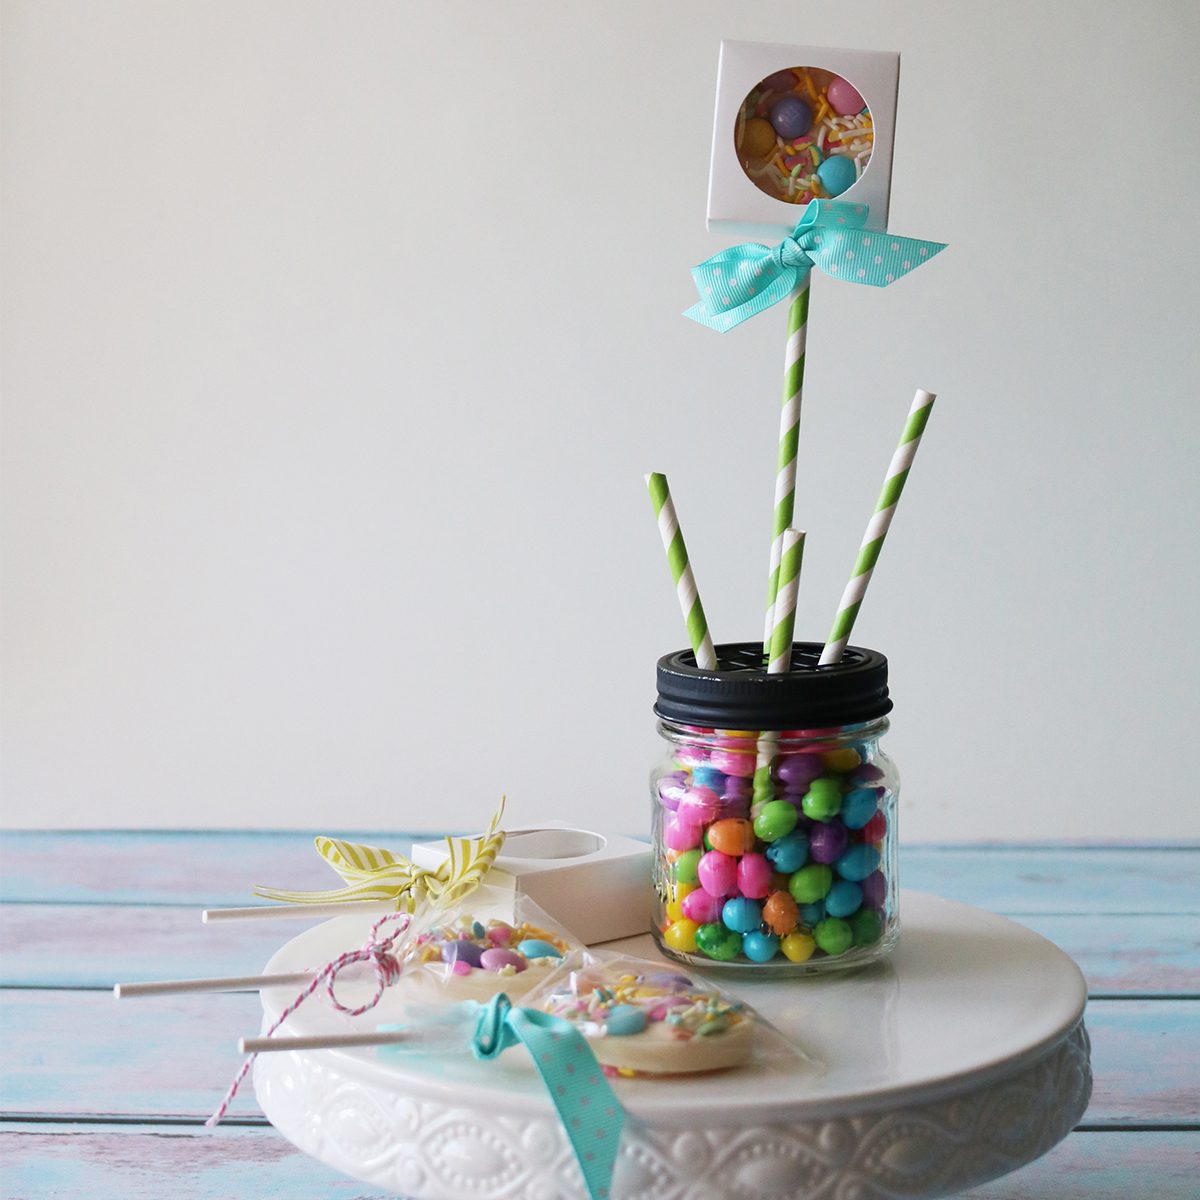 diy sweet ideas for entertaining and favors - chocolate candy sweets | Lorrie Everitt Studio